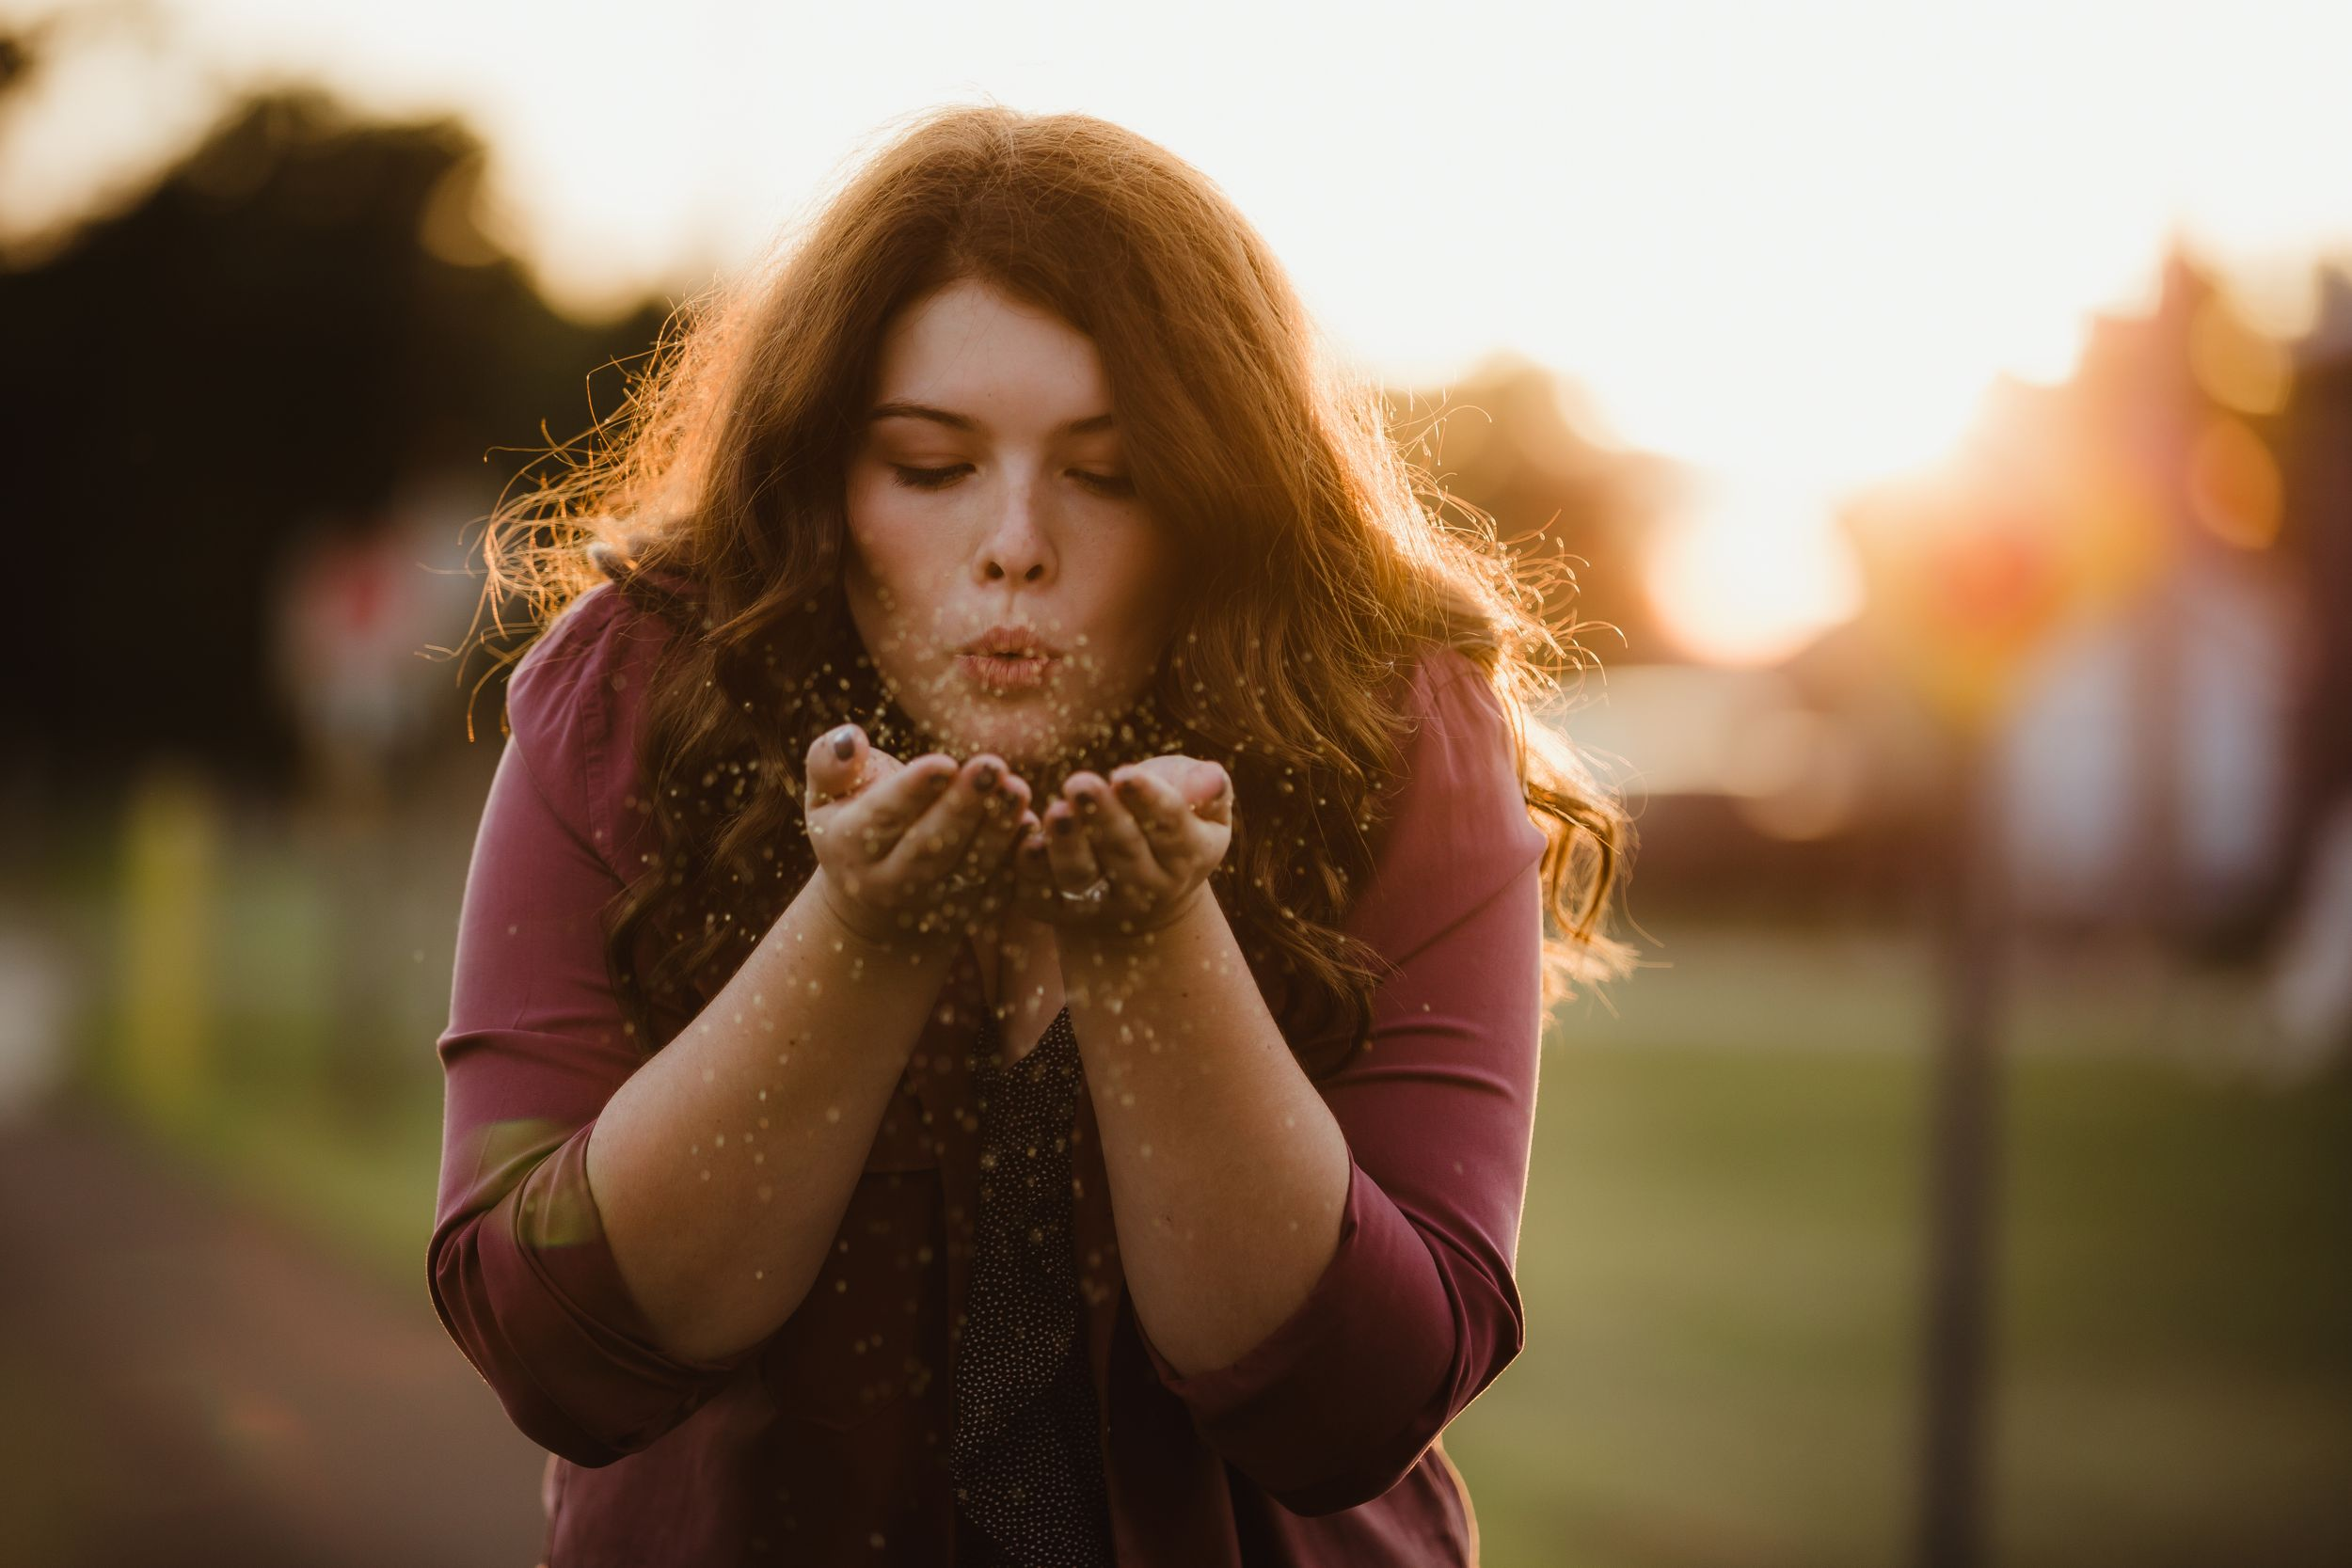 Brunette high school senior photo of a girl blowing glitter with a sunset behind her.